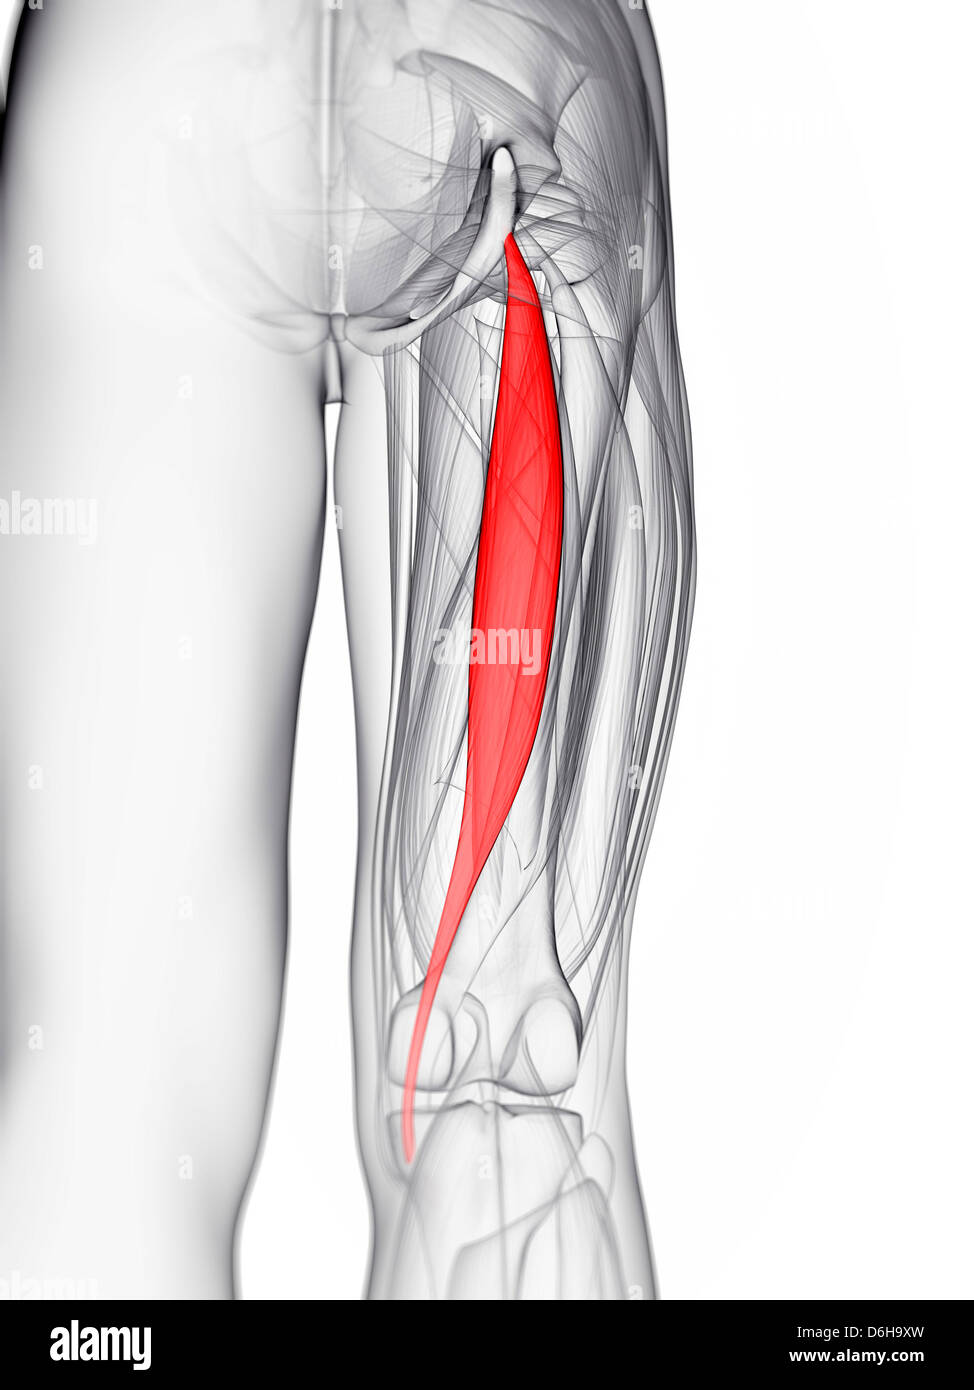 Thigh Muscle Stockfotos & Thigh Muscle Bilder - Alamy